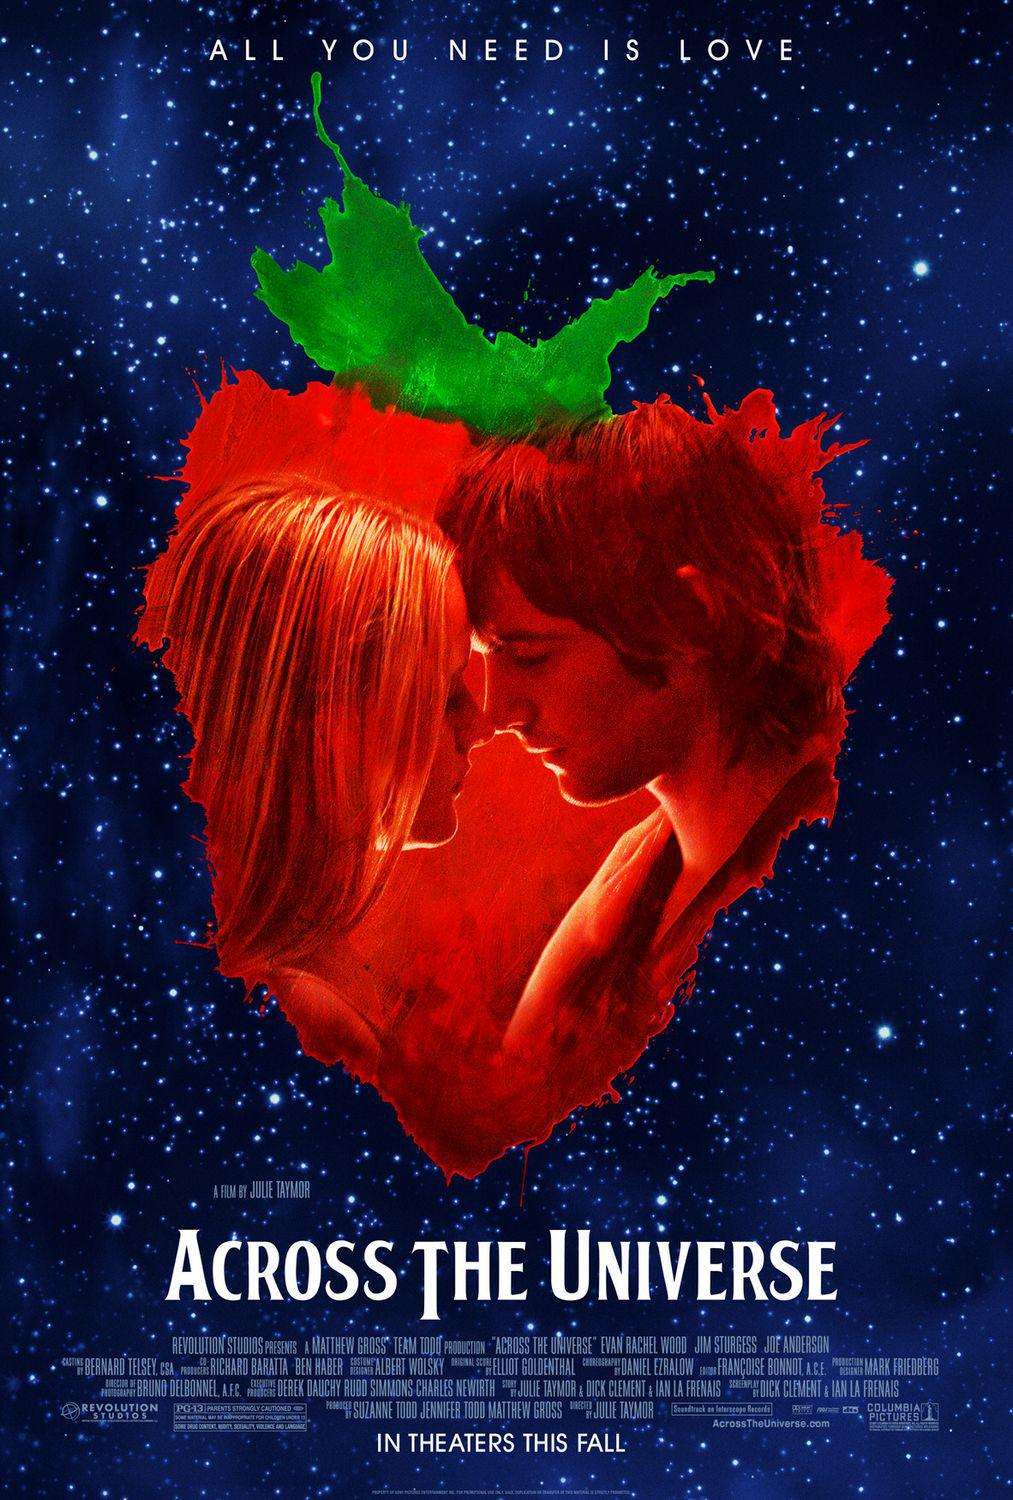 Across the Universe - All you need is love